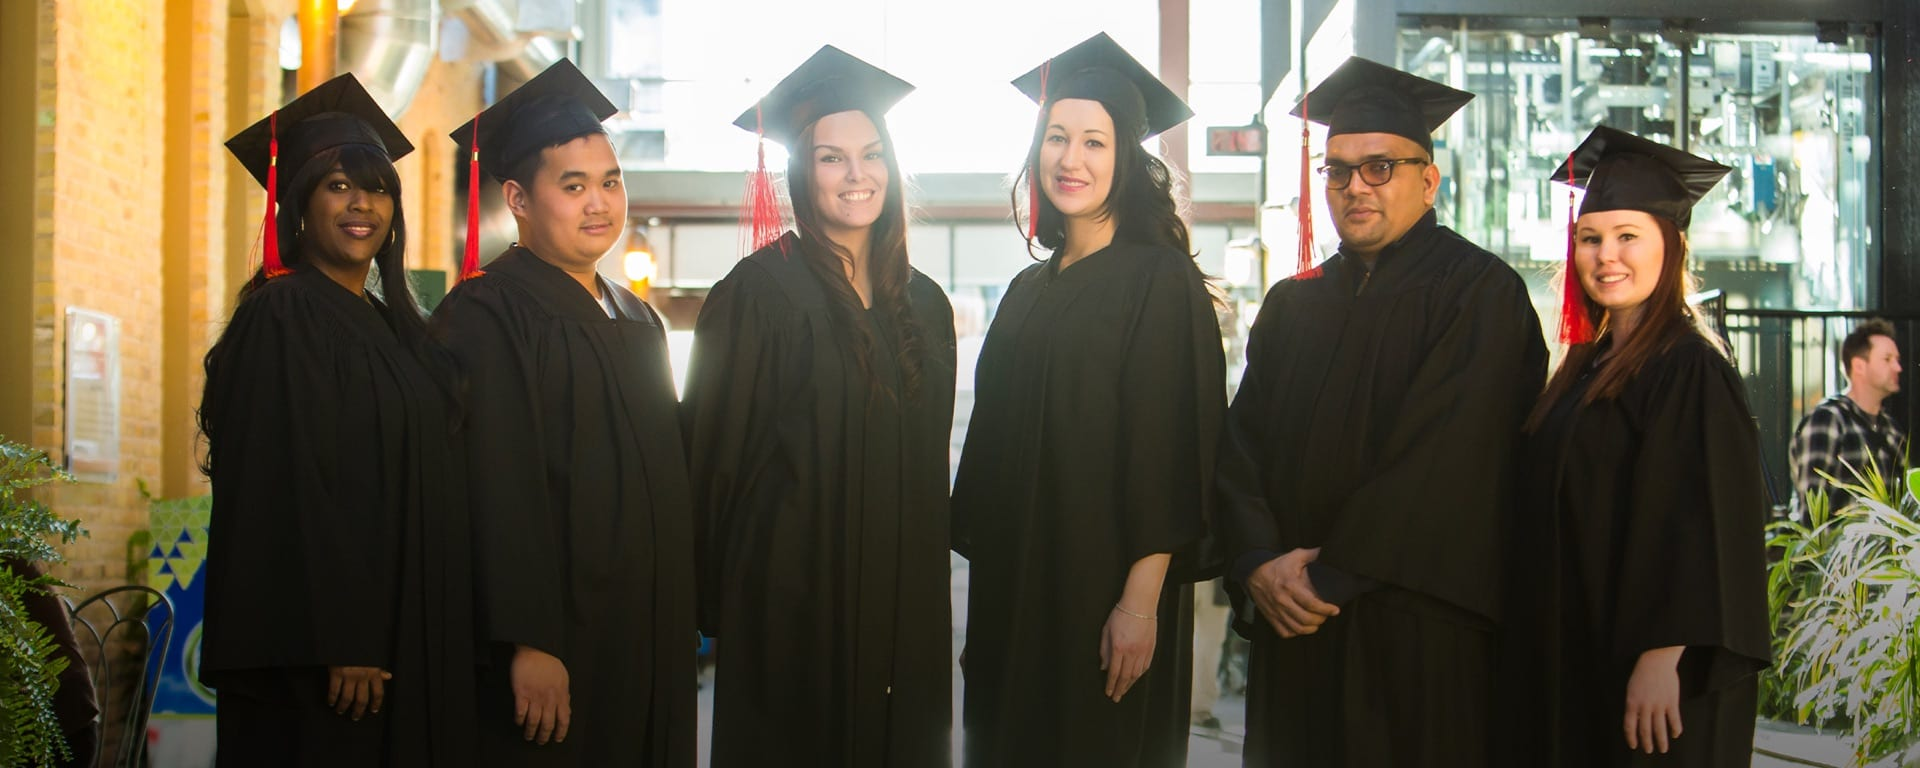 Students in convocation gowns